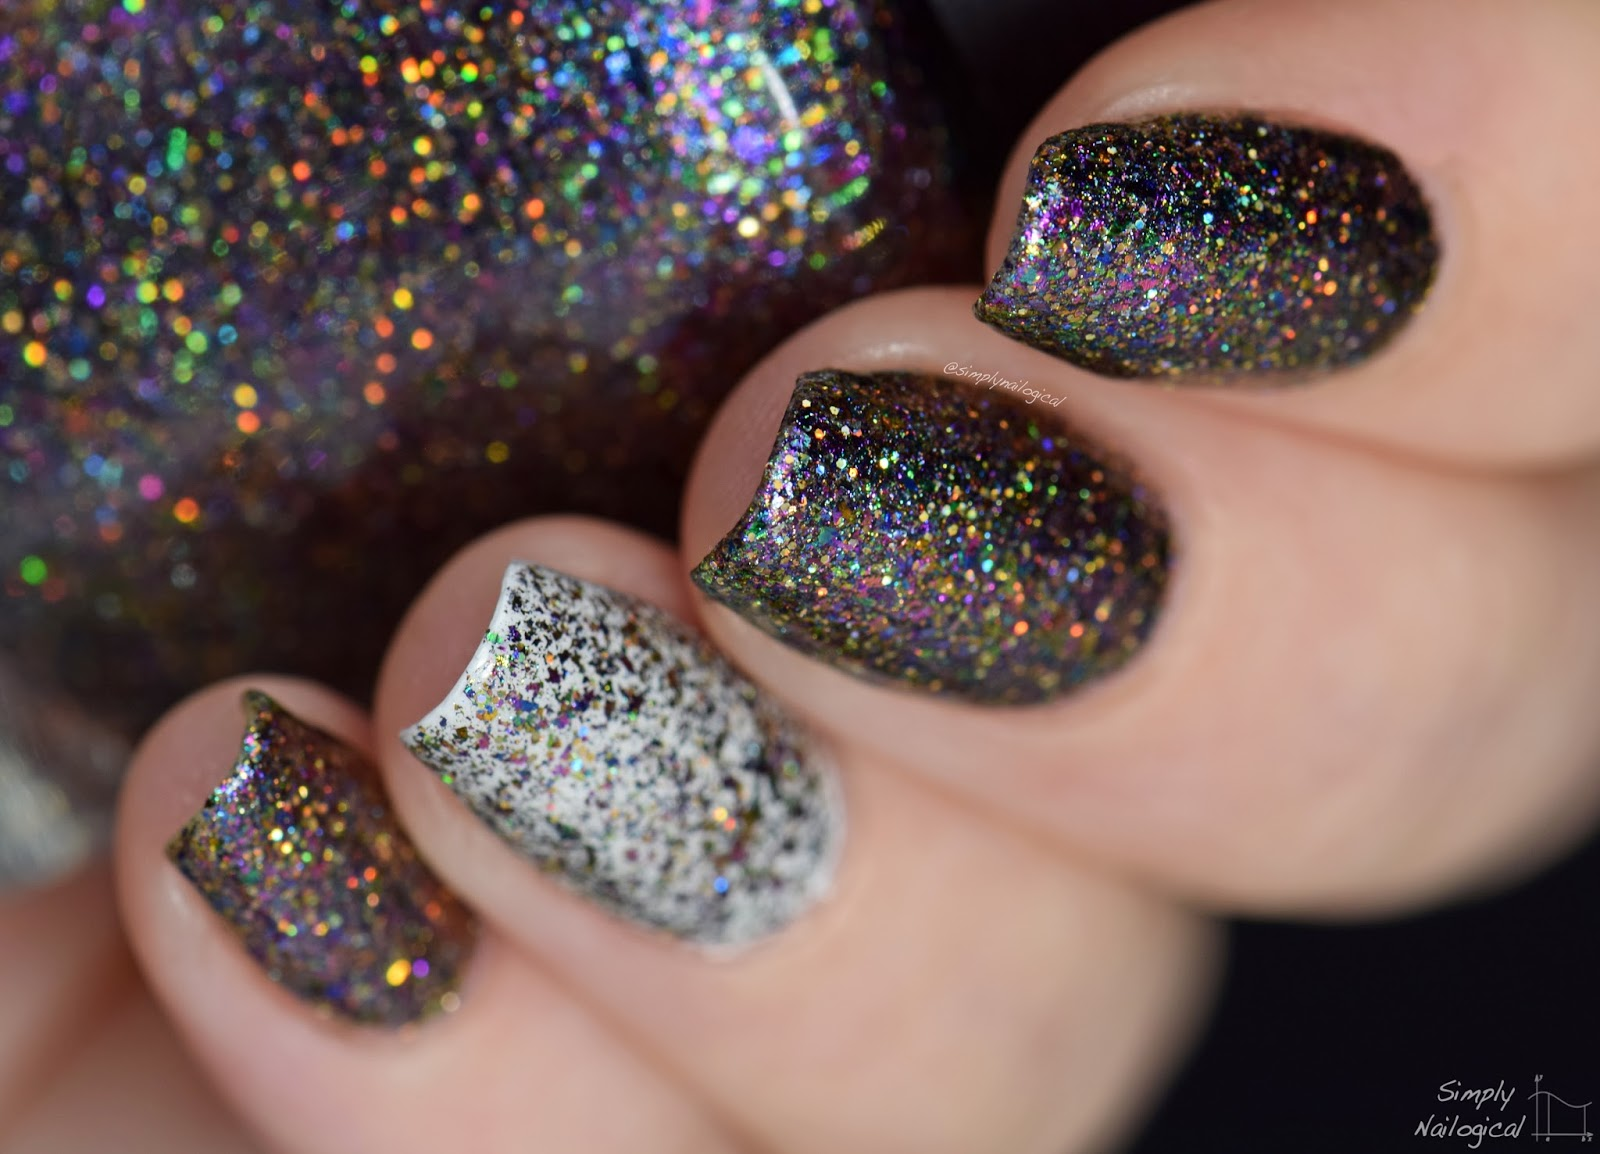 Starrily - Apollo holo